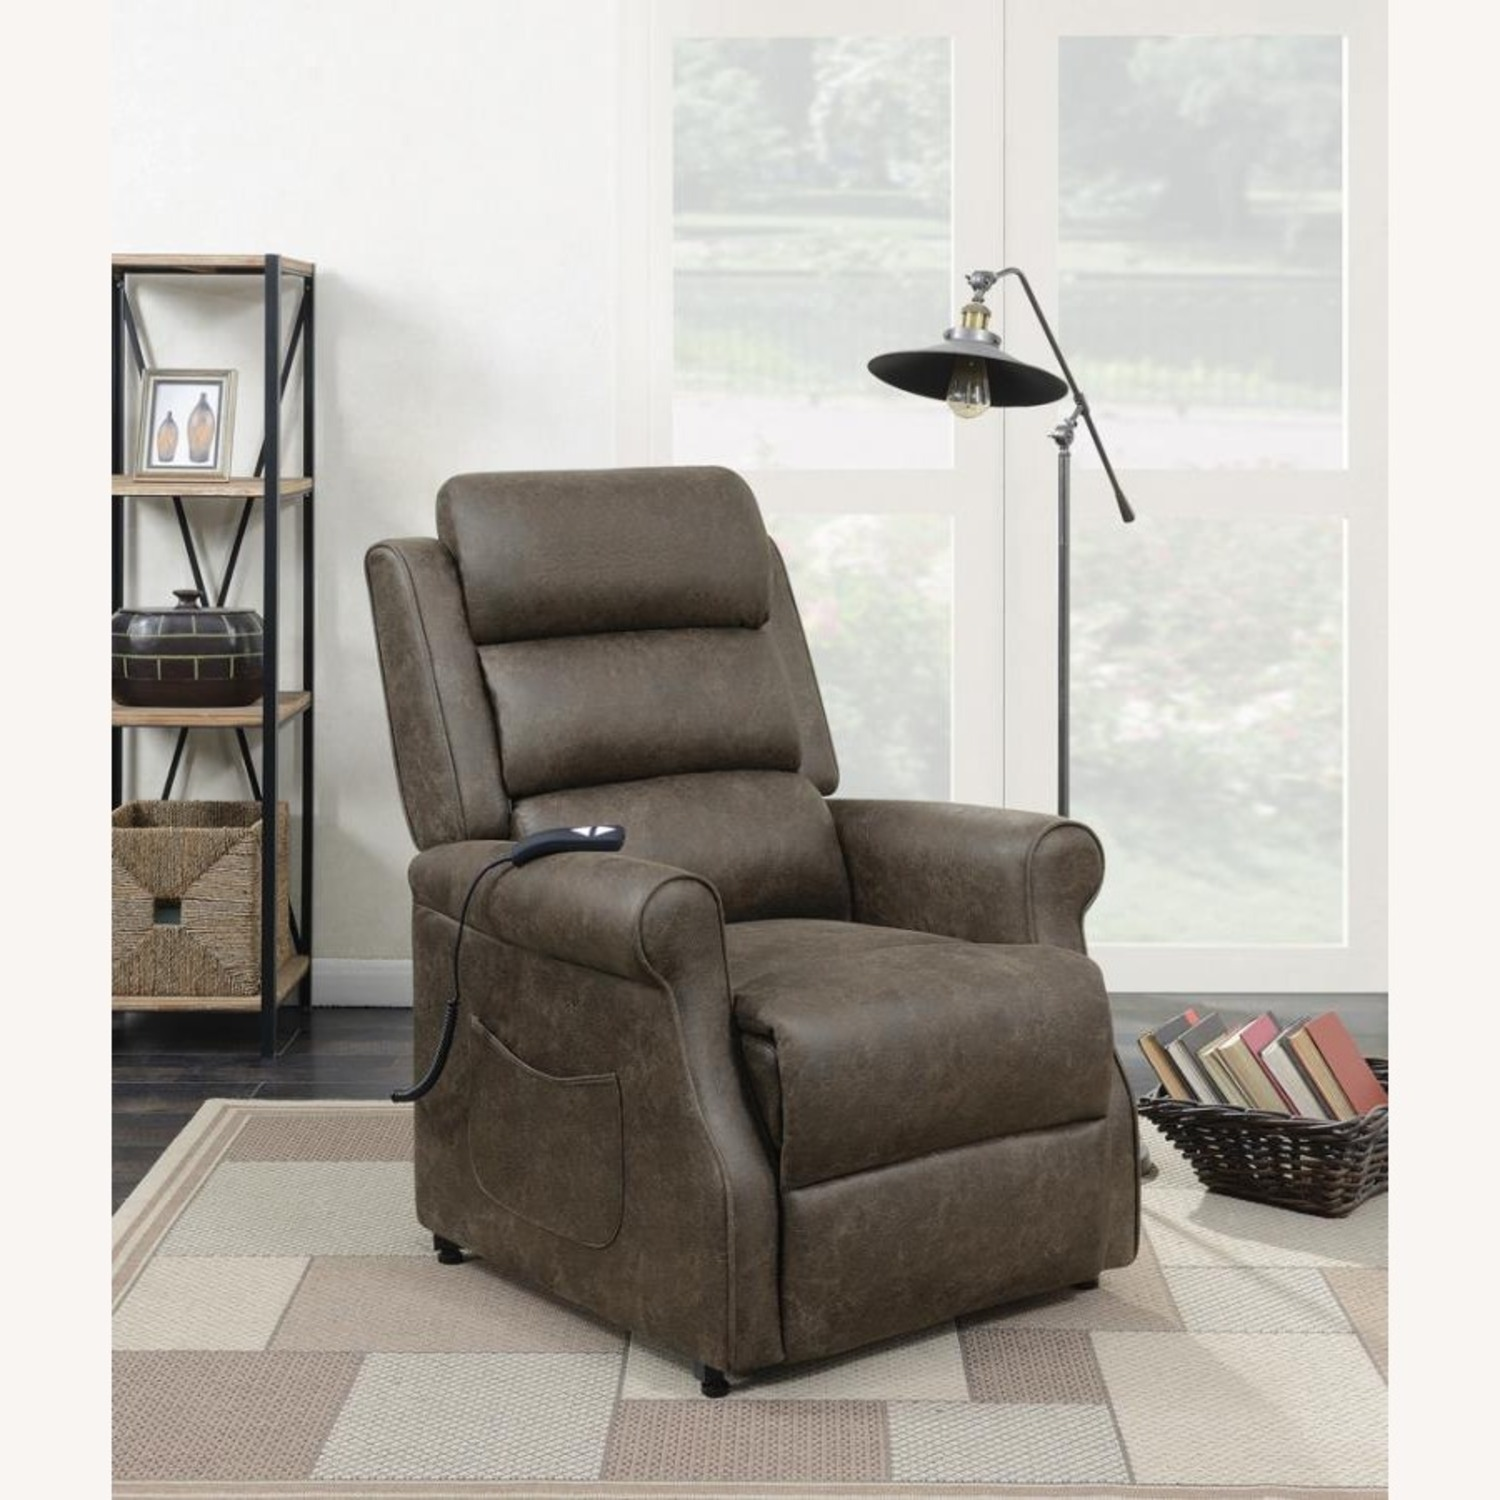 Power Lift Recliner In Brown Faux Suede Upholstery - image-5